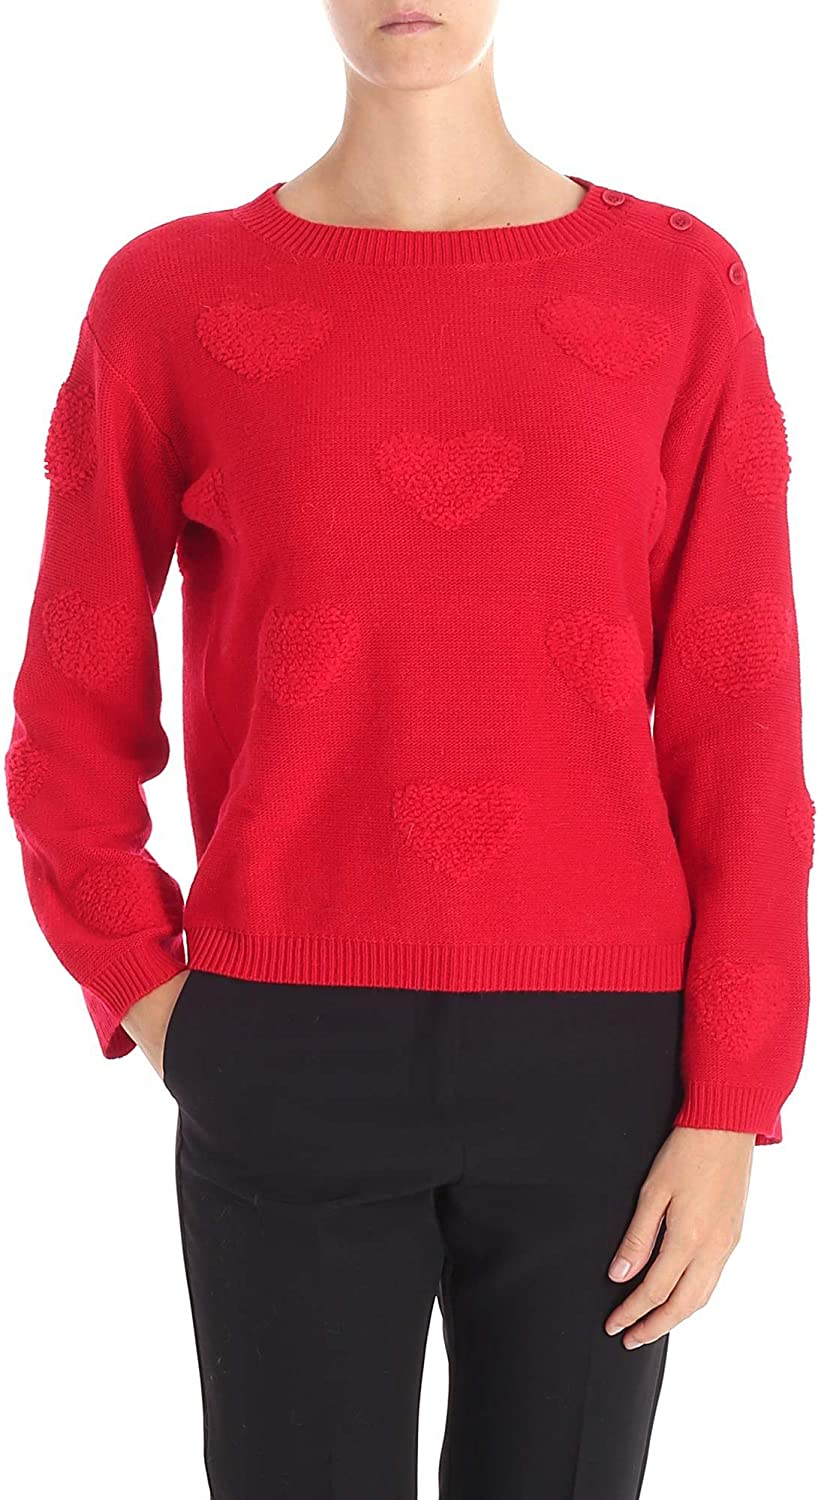 My Twin Women's JA83E100456 Red Acrylic Jumper